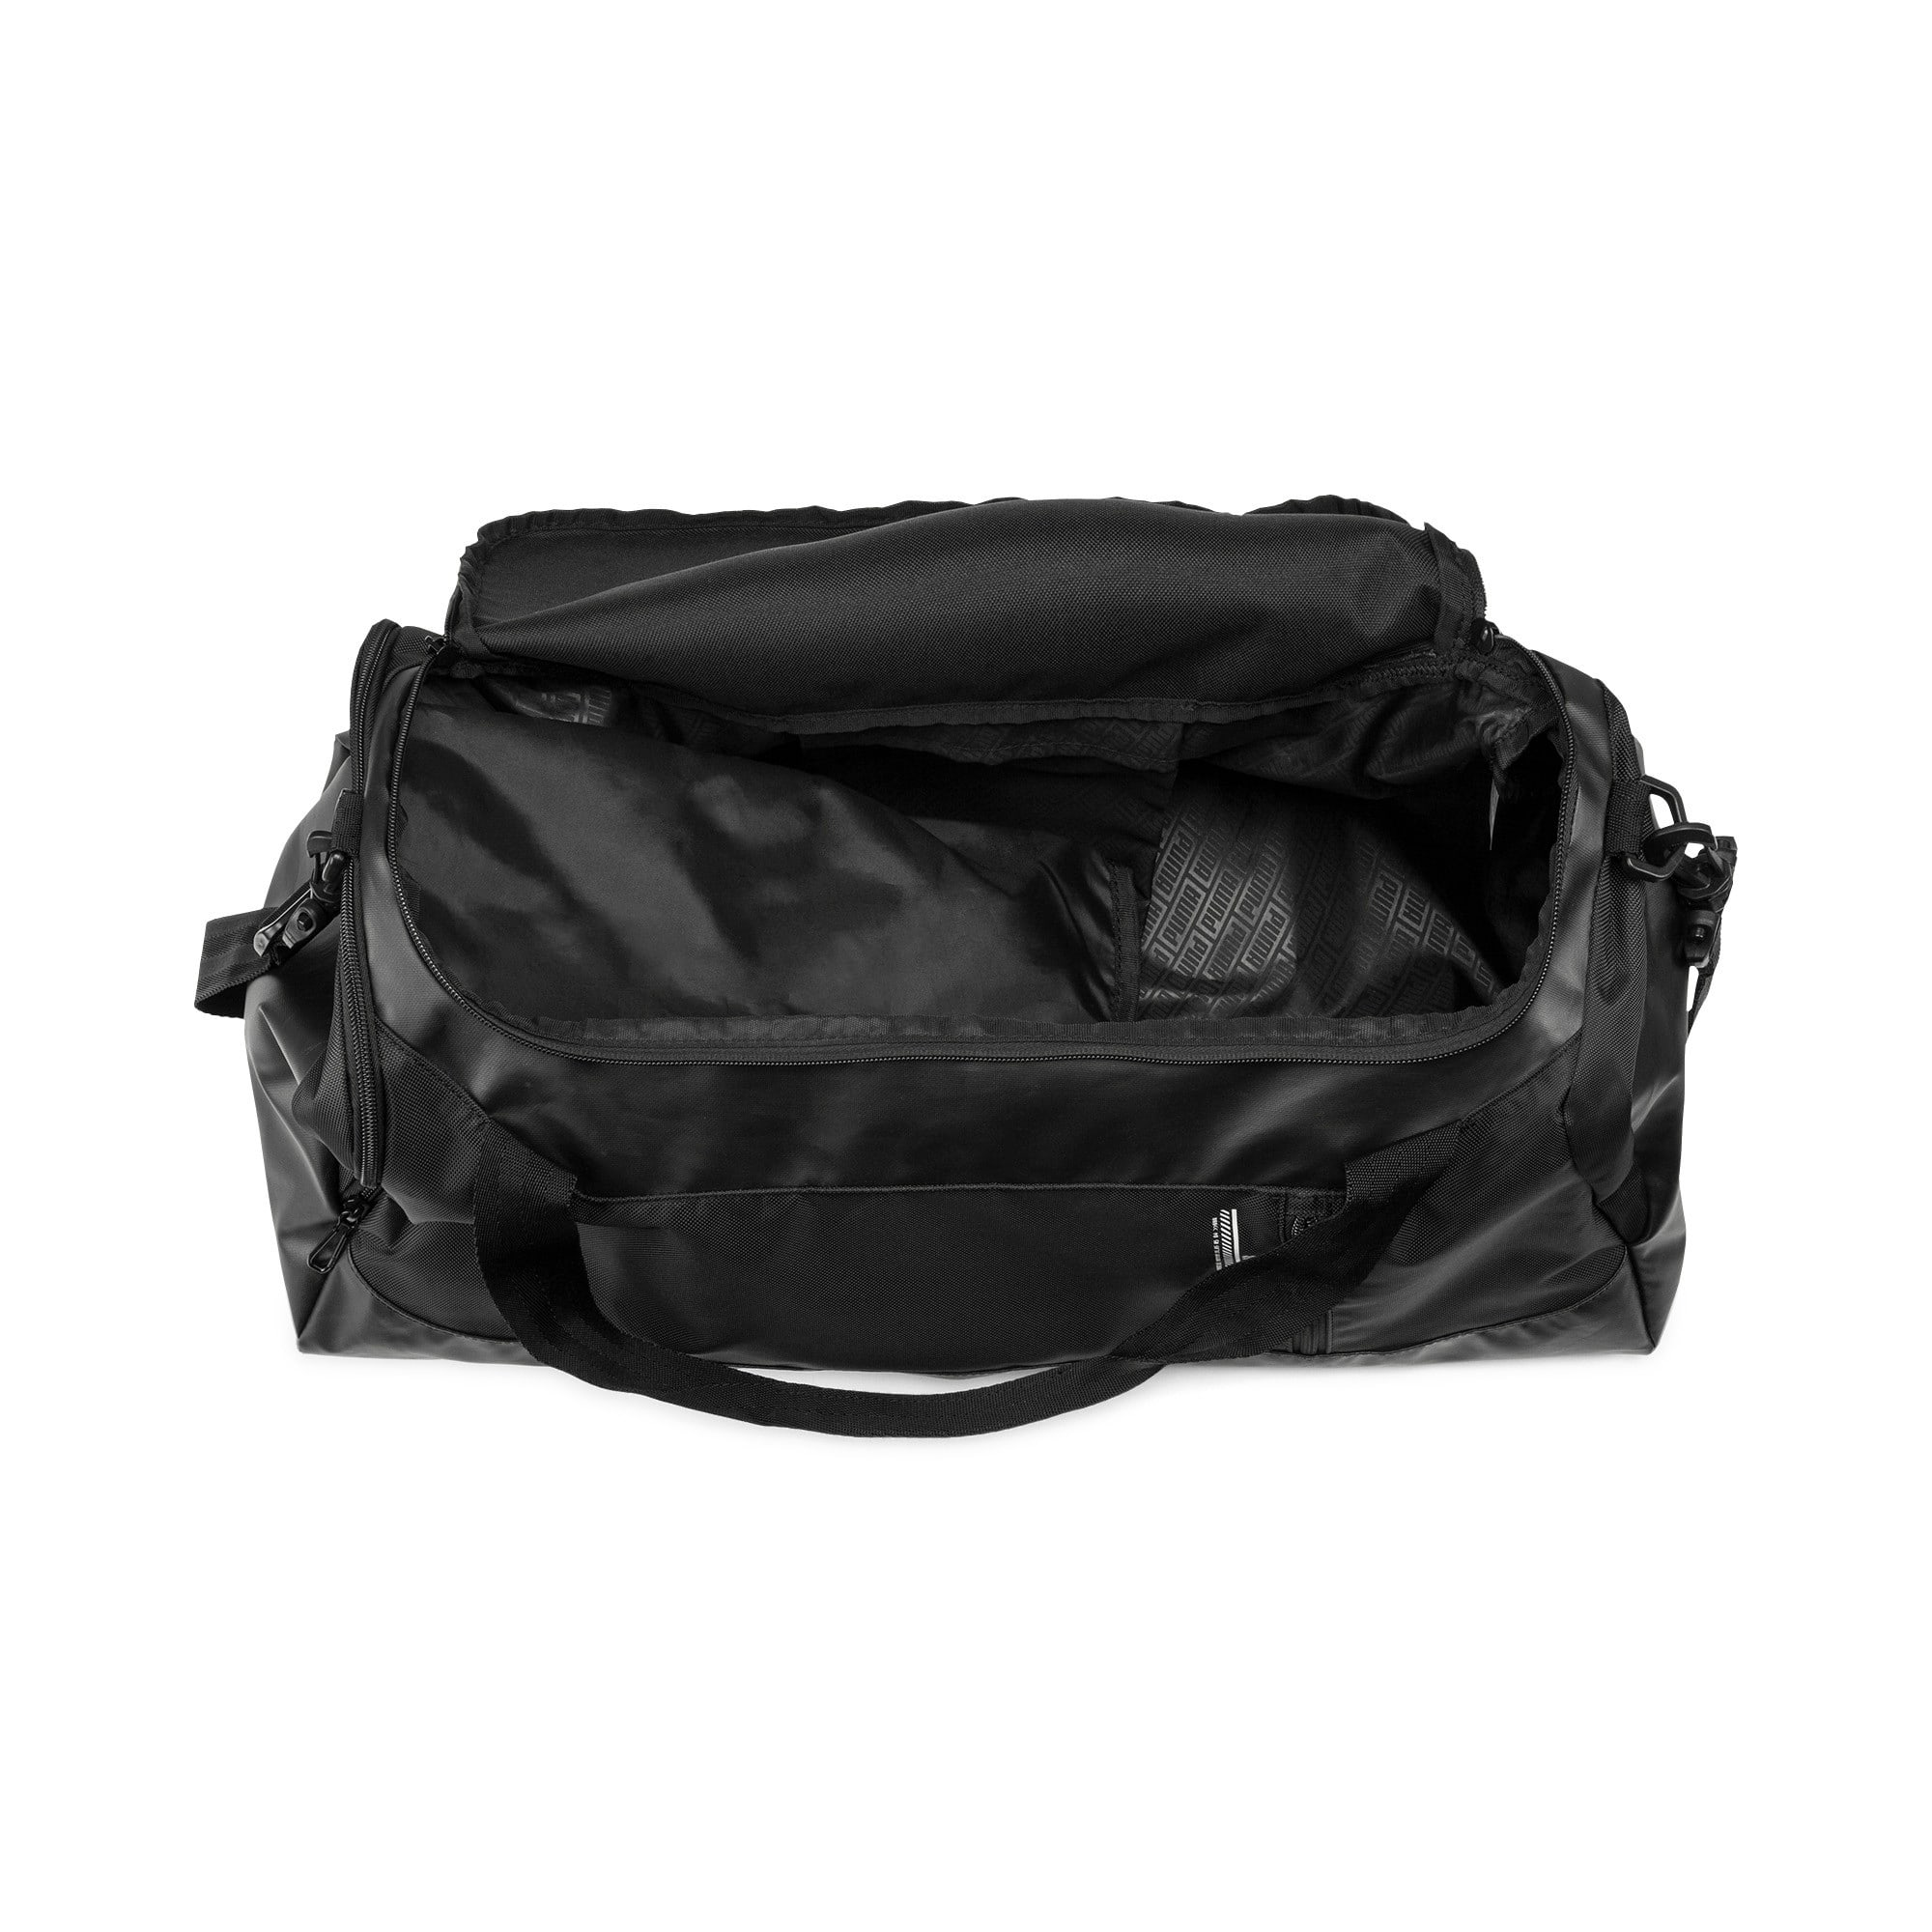 Thumbnail 3 of Energy Training Bag, Puma Black, medium